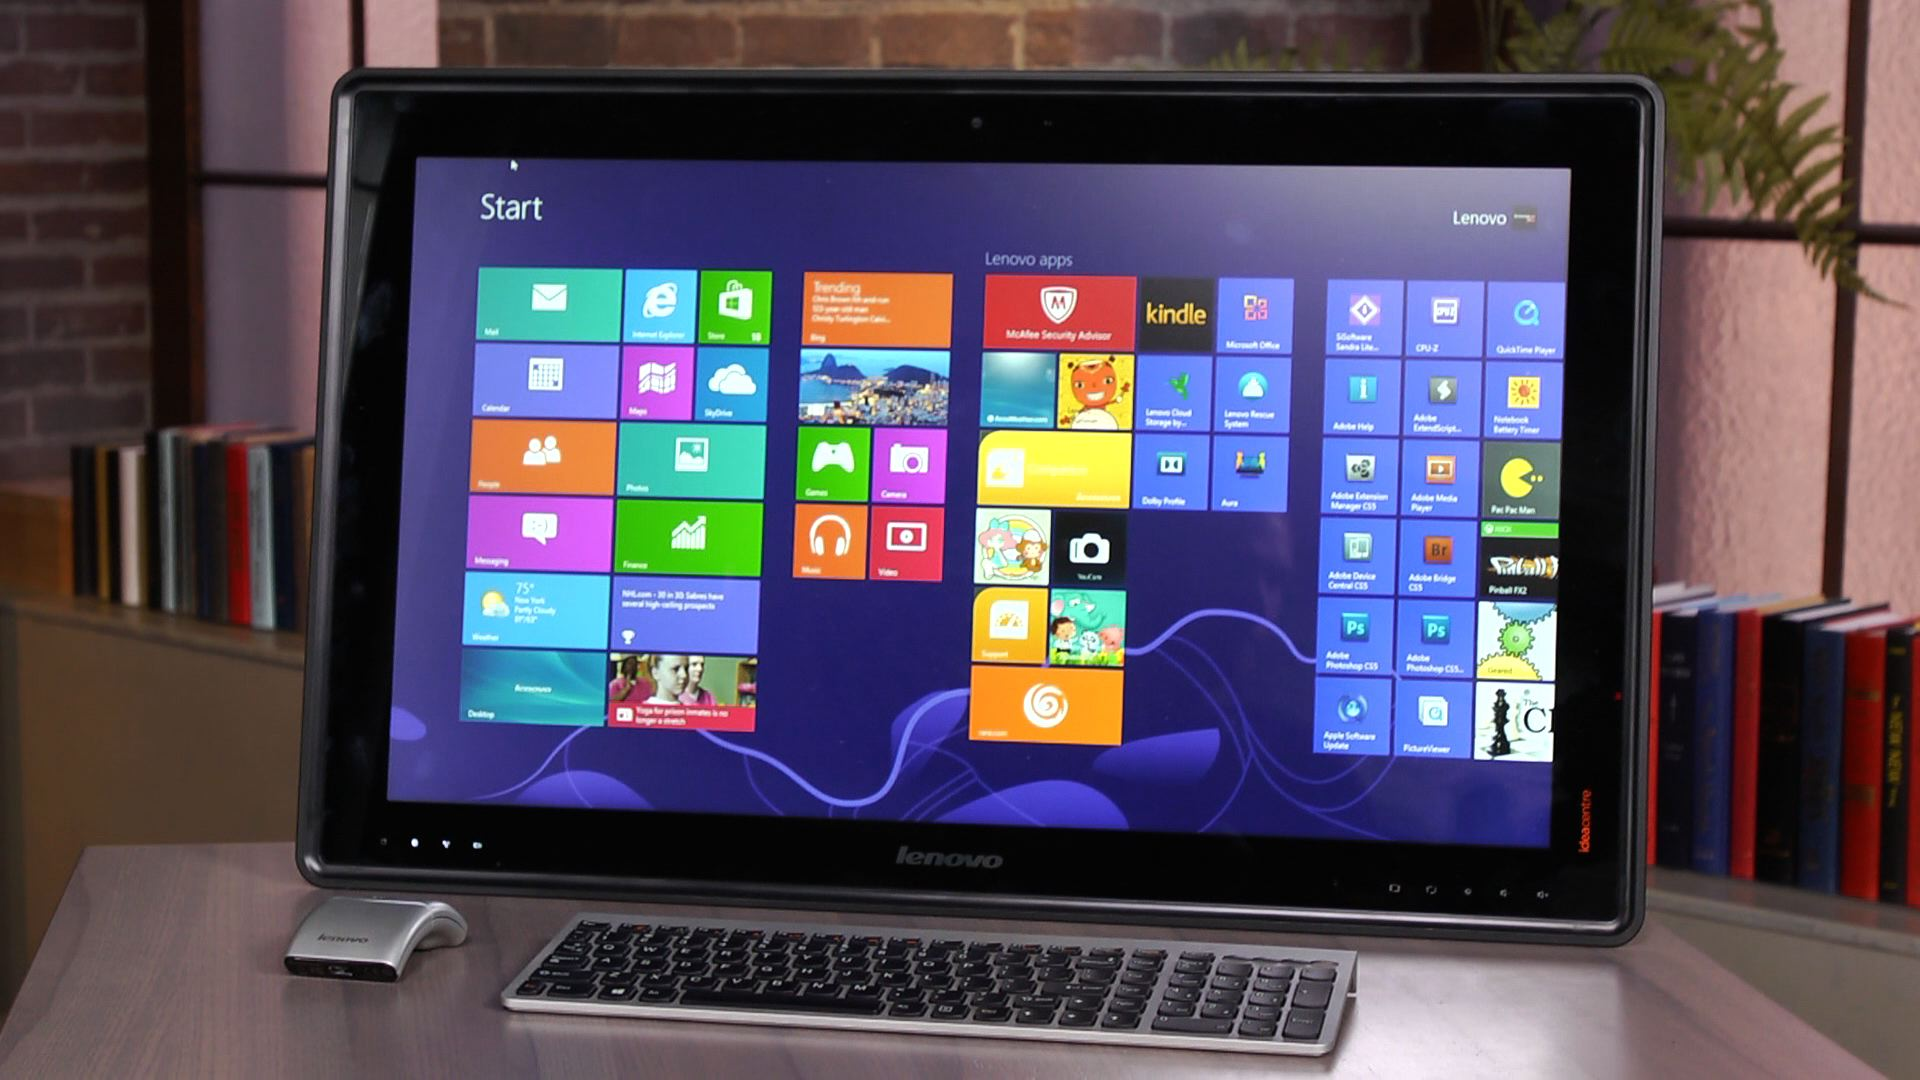 Video: Primer vistazo: Lenovo IdeaCentre Horizon 27 (Core i5)